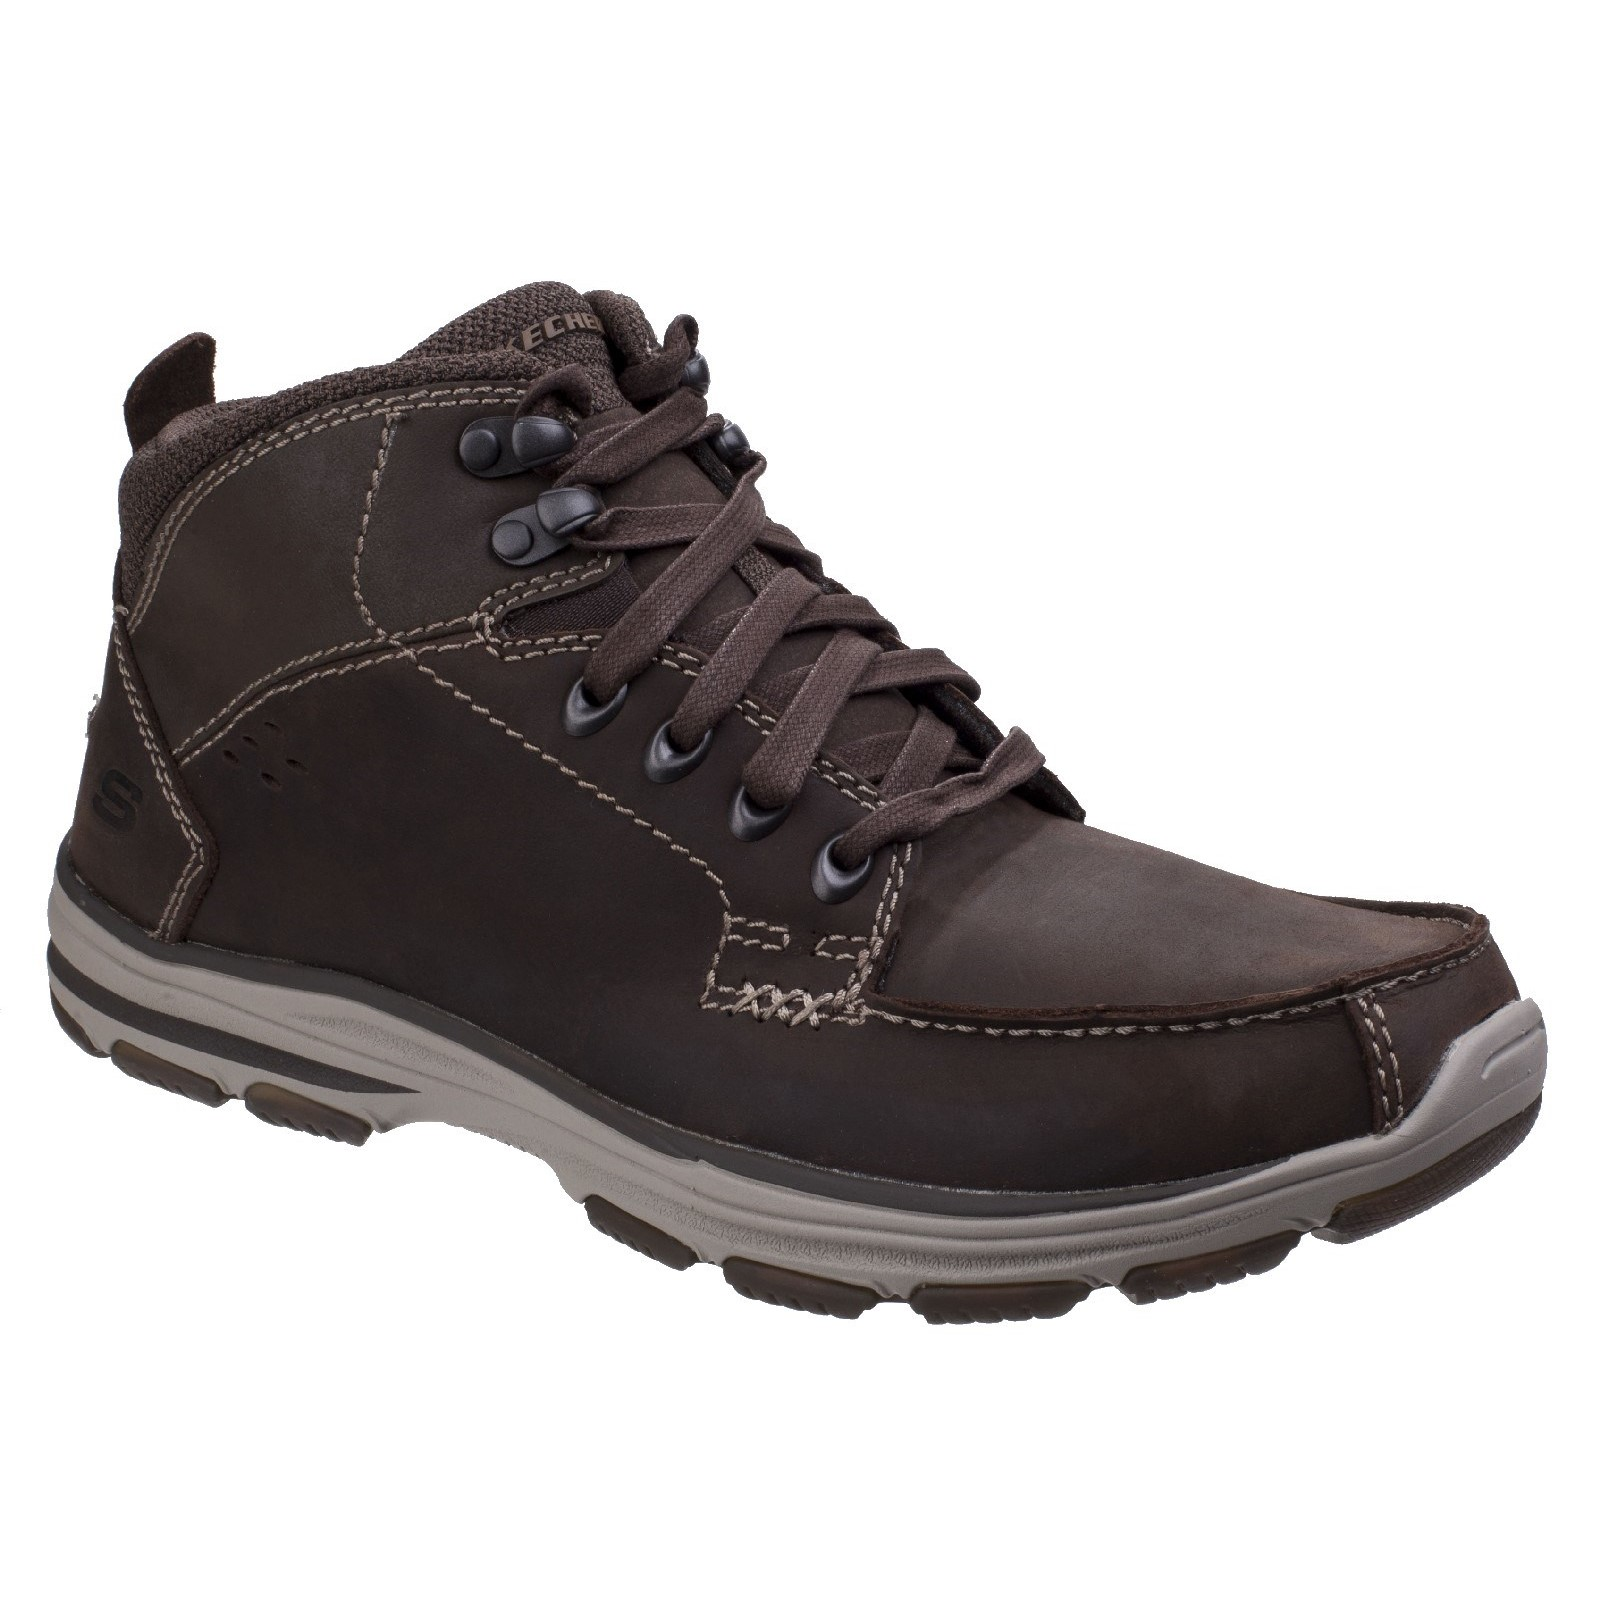 Skechers SK65169 Garton Dodson chocolate brown lace up boot size 6